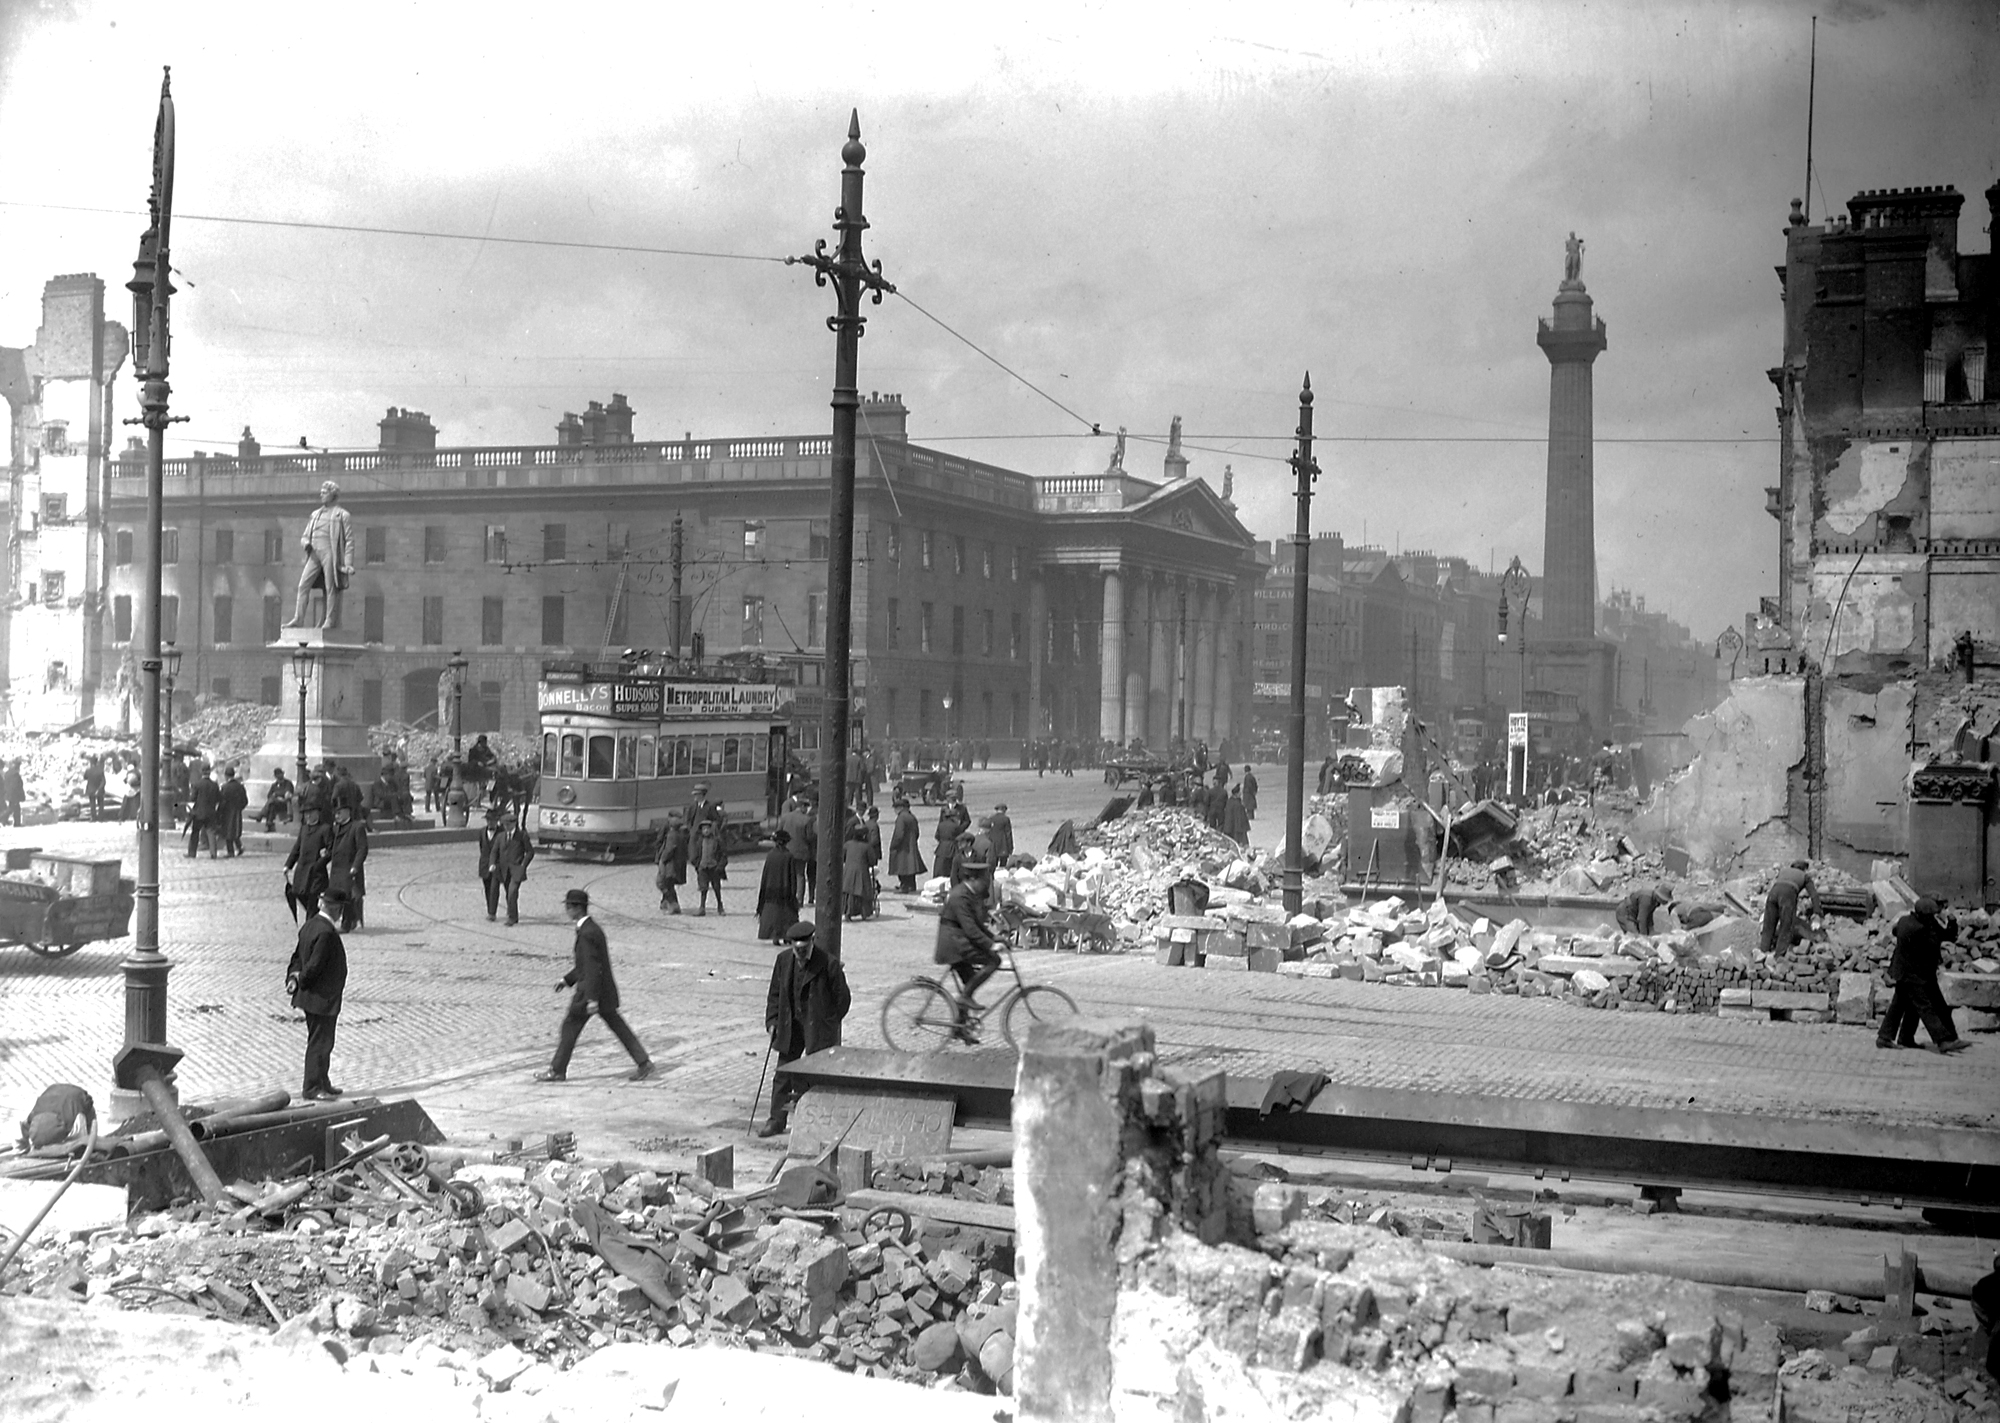 Abbey and Sackville Street (O'Connell Street) shelled, rubble remaining.